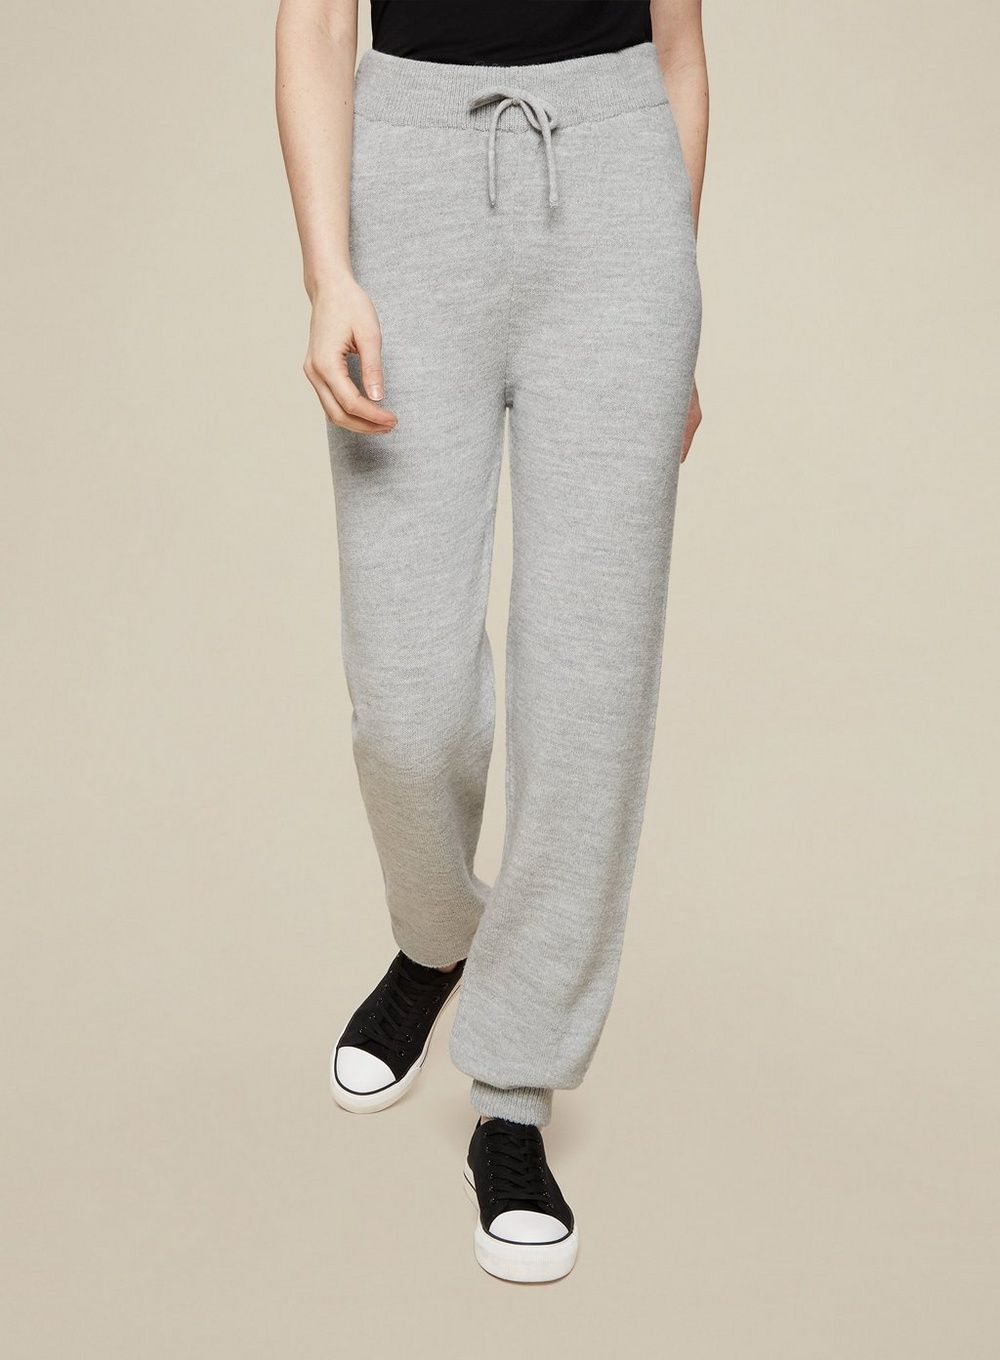 Dorothy Perkins Womens Tall Grey Knitted Joggers Activewear Bottoms Trousers